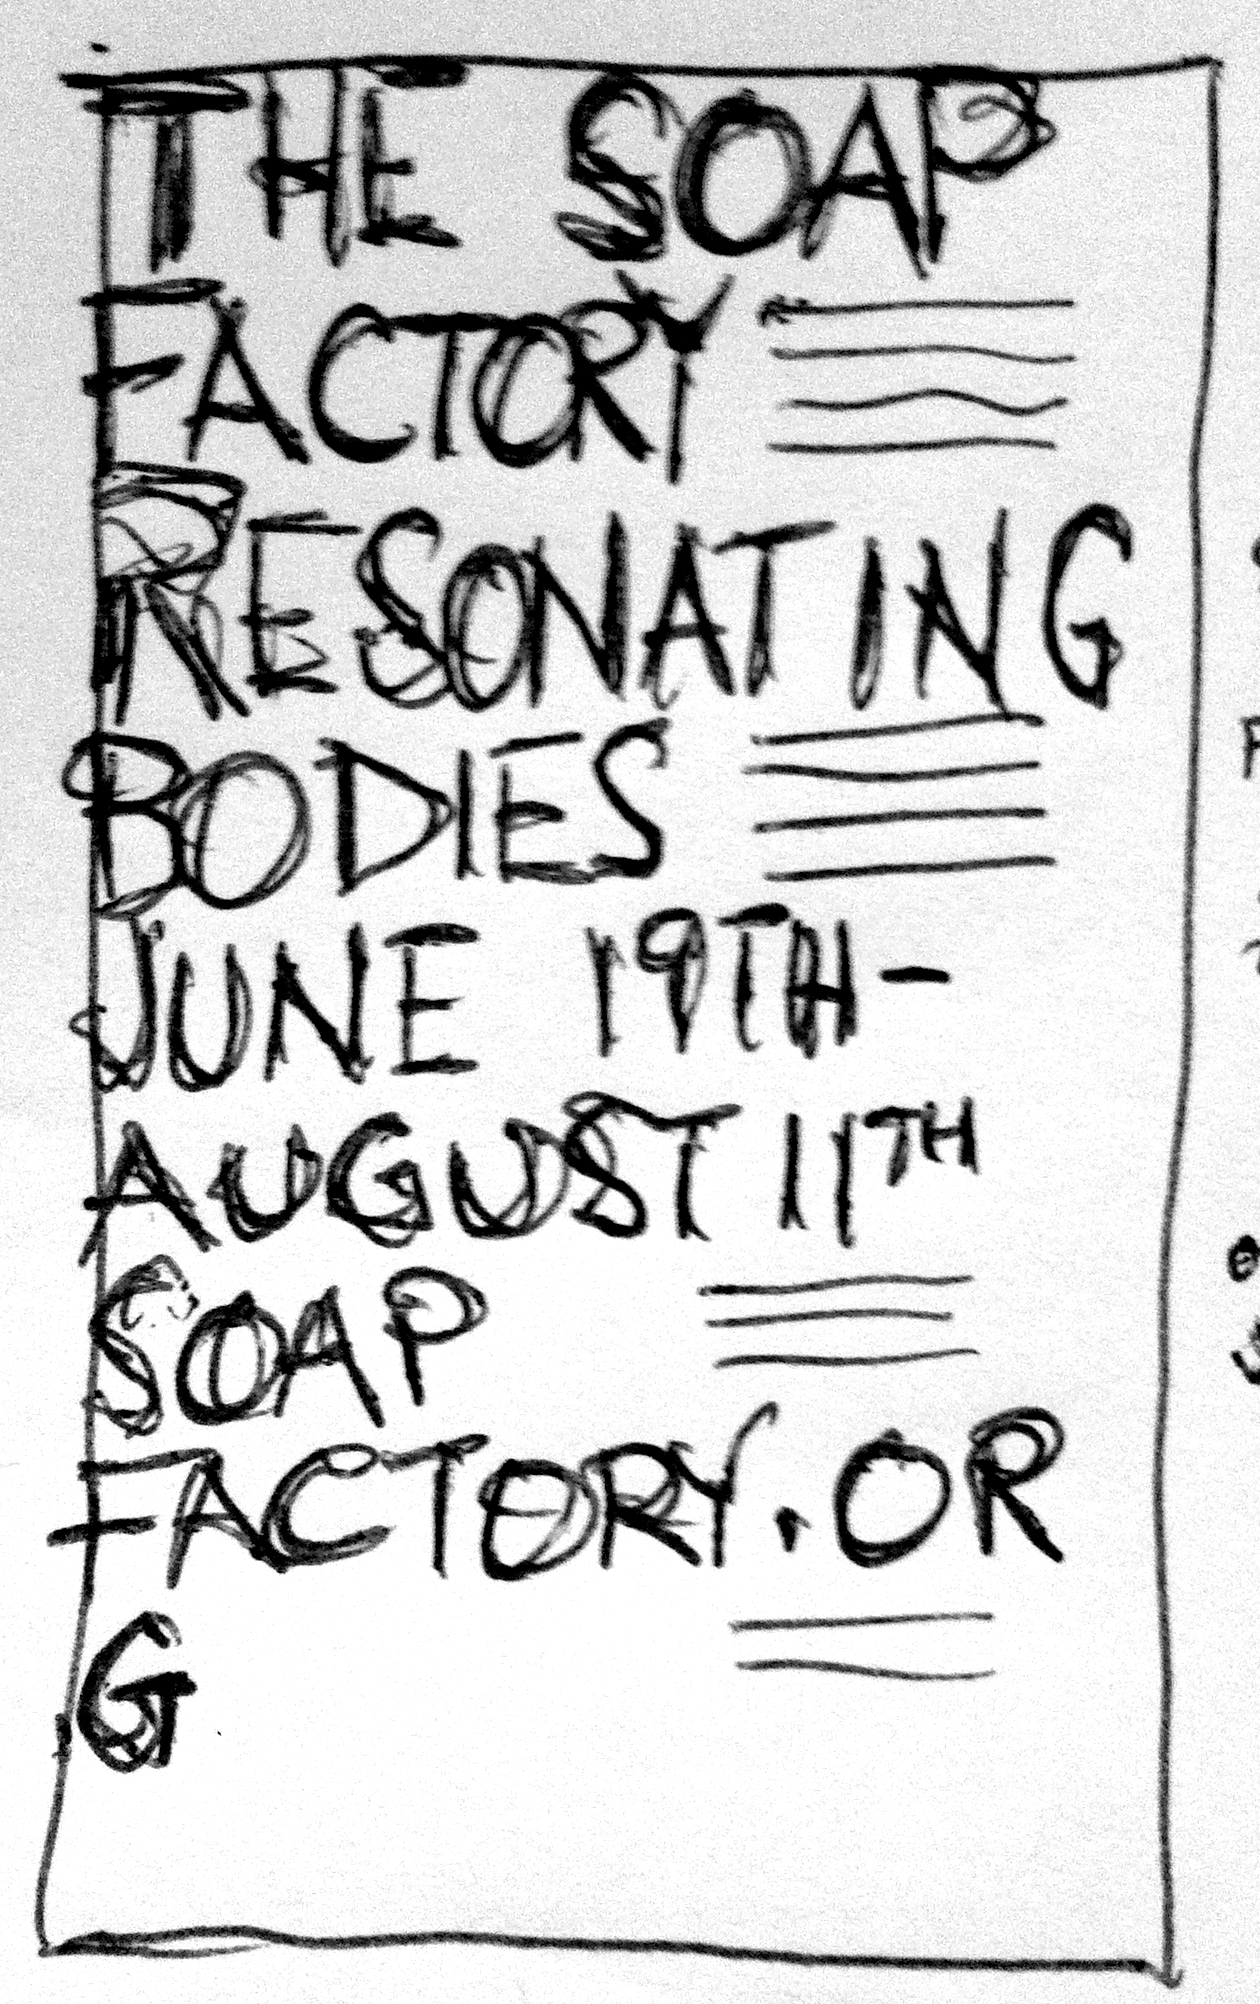 Resonating Bodies poster concept where type would be set at extremes forcing the viewer to move their body through space to interact with it.